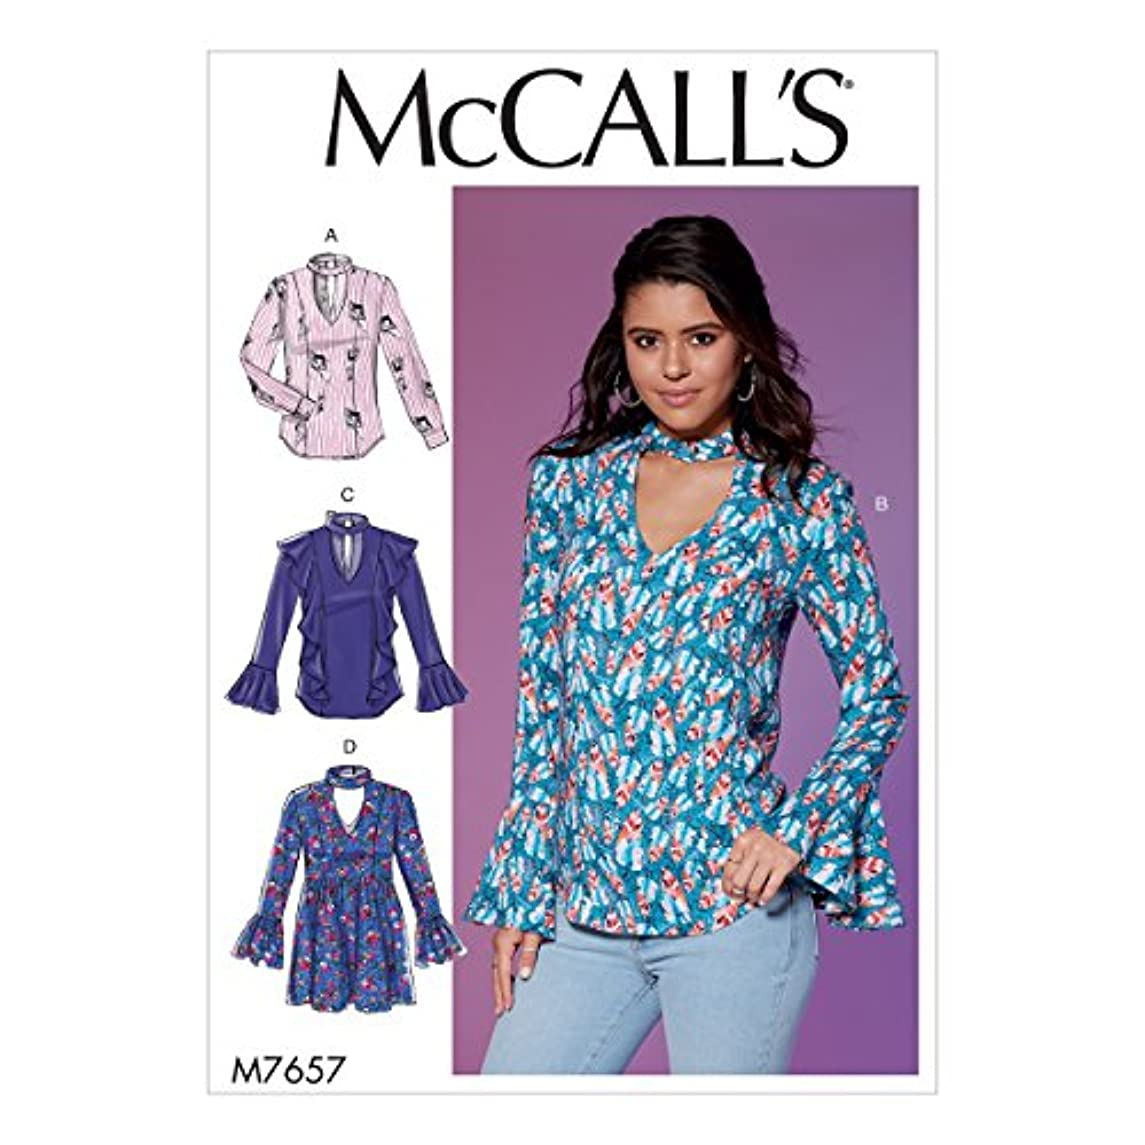 McCall's Patterns M7657A50 Misses' Tops and Tunic with Banded V-Neck and Ruffle Options